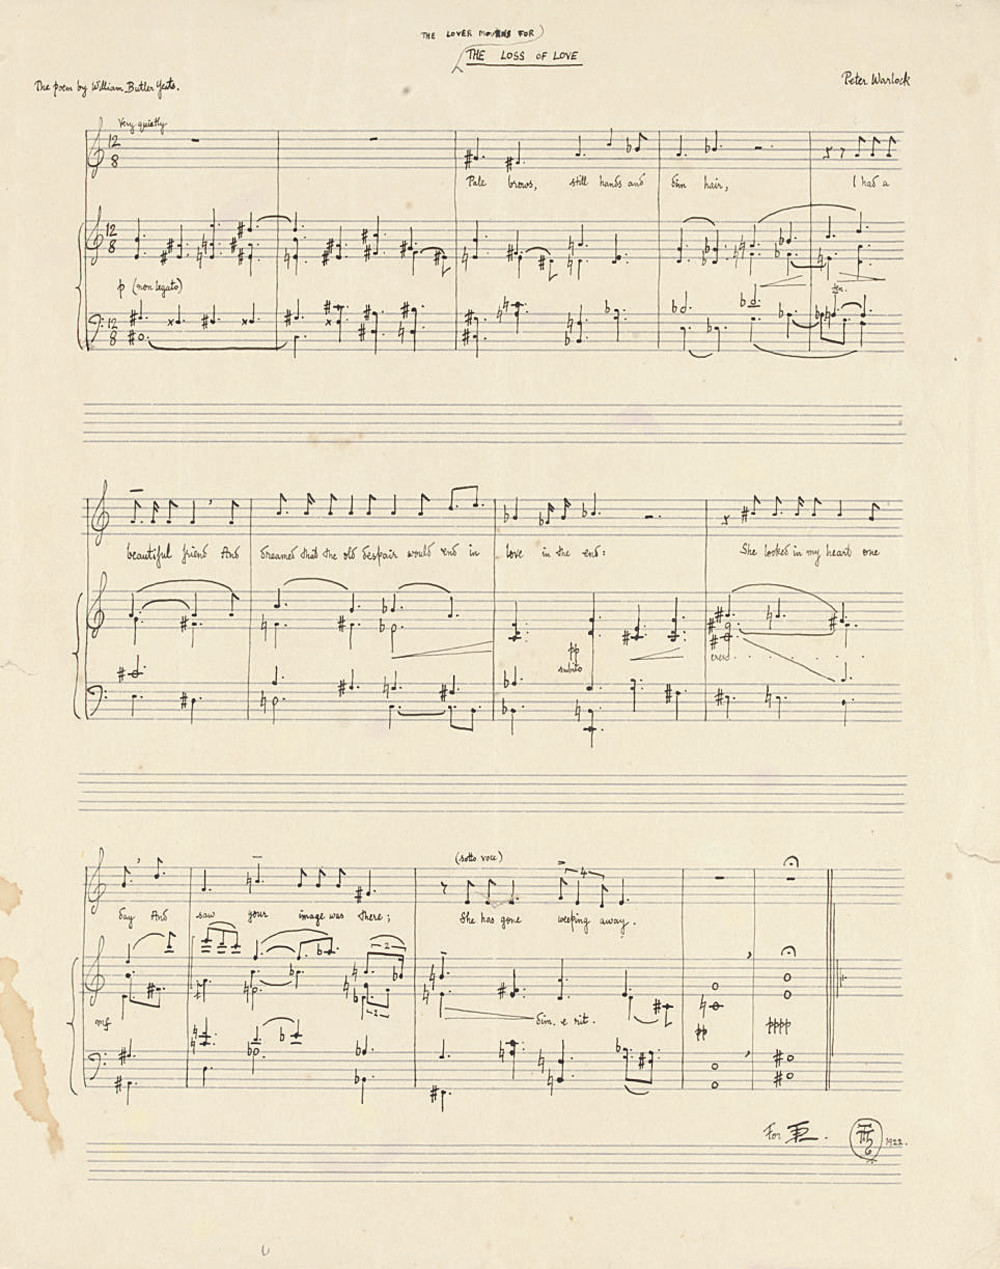 "WARLOCK, Peter [i.e. Philip Heseltine (1894-1930)]. Autograph music manuscript signed (with monogram) of two songs, 'The Cloths of Heaven' [composed 1916 and revised 1919] and 'The Loss of Love' (altered to 'The Lover mourns for the Loss of Love') [composed 1916 and revised 1920], n.d. [1922], both texts by W.B. Yeats, scored for voice and piano, in ink on three systems of three staves, inscribed 'For I.H.' [his cousin, Irene ""Freddie"" Heseltine], 2 leaves, small folio (310 x 247mm), on a bifolium; [with] an autograph letter signed (with monogram) to [Freddie Heseltine], Cefyn-Bryntalch, 3 December 1922, 'I'm tremendously pleased you liked The Curlew though the poor bird was nearly done to death by Mr Wilson. I was not so sanguine as to expect an interpretation from him but I did expect (a) the right notes (b) entries to be made at the right place ... and (c) rational demeanour on the platform', looking forward to a more sympathetic performance by the baritone John Goss, and apologising elyptically for 'my somewhat eccentric behaviour' in a Limehouse pub, 3 pages, 4to, bifolium; [and] 8 related printed items. Provenance: from the composer to his cousin, Irene (""Freddie"") Heseltine; by descent to the present owner.  EARLY VERSIONS OF SONGS FROM THE CURLEW. Both songs, with the accompaniments orchestrated, were initially included in The Curlew (Warlock's setting of five Yeats poems for tenor voice, flute, horn and string quartet), though 'The Cloths of Heaven' was later discarded and remained unpublished until the 1982 collected edition.	 (3)"